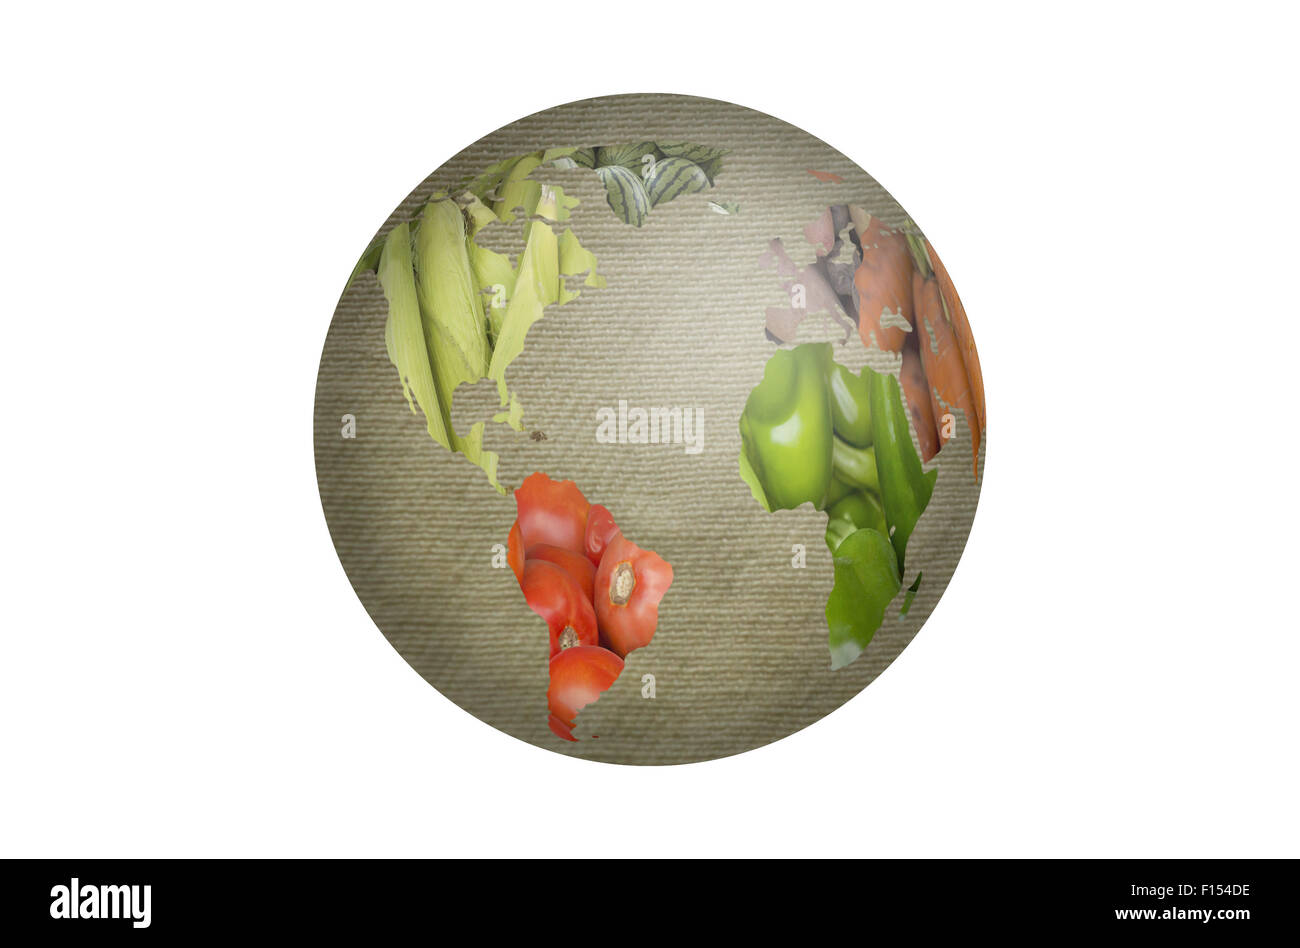 World map collage of lots of popular fruits and vegetables stock world map collage of lots of popular fruits and vegetables gumiabroncs Image collections